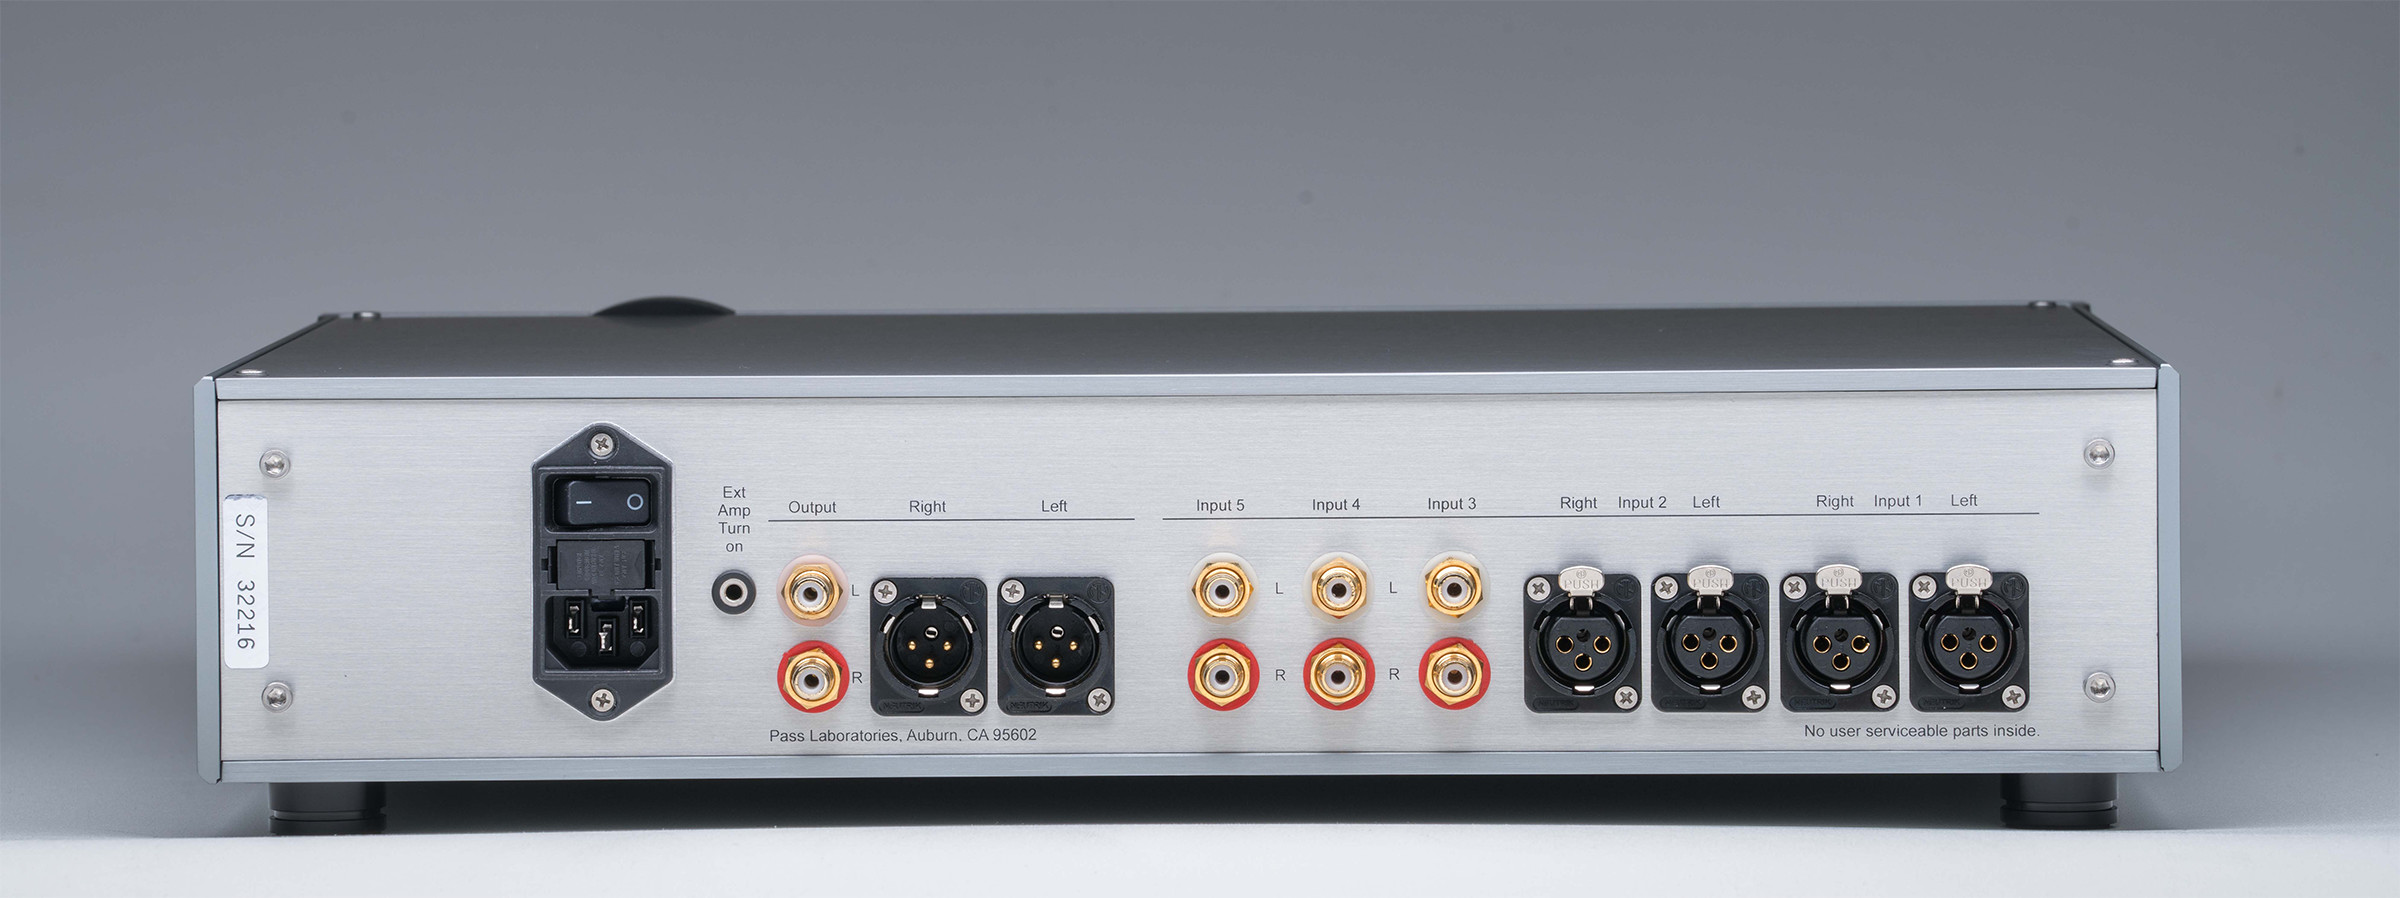 Pass Labs XP-12 Preamplifier